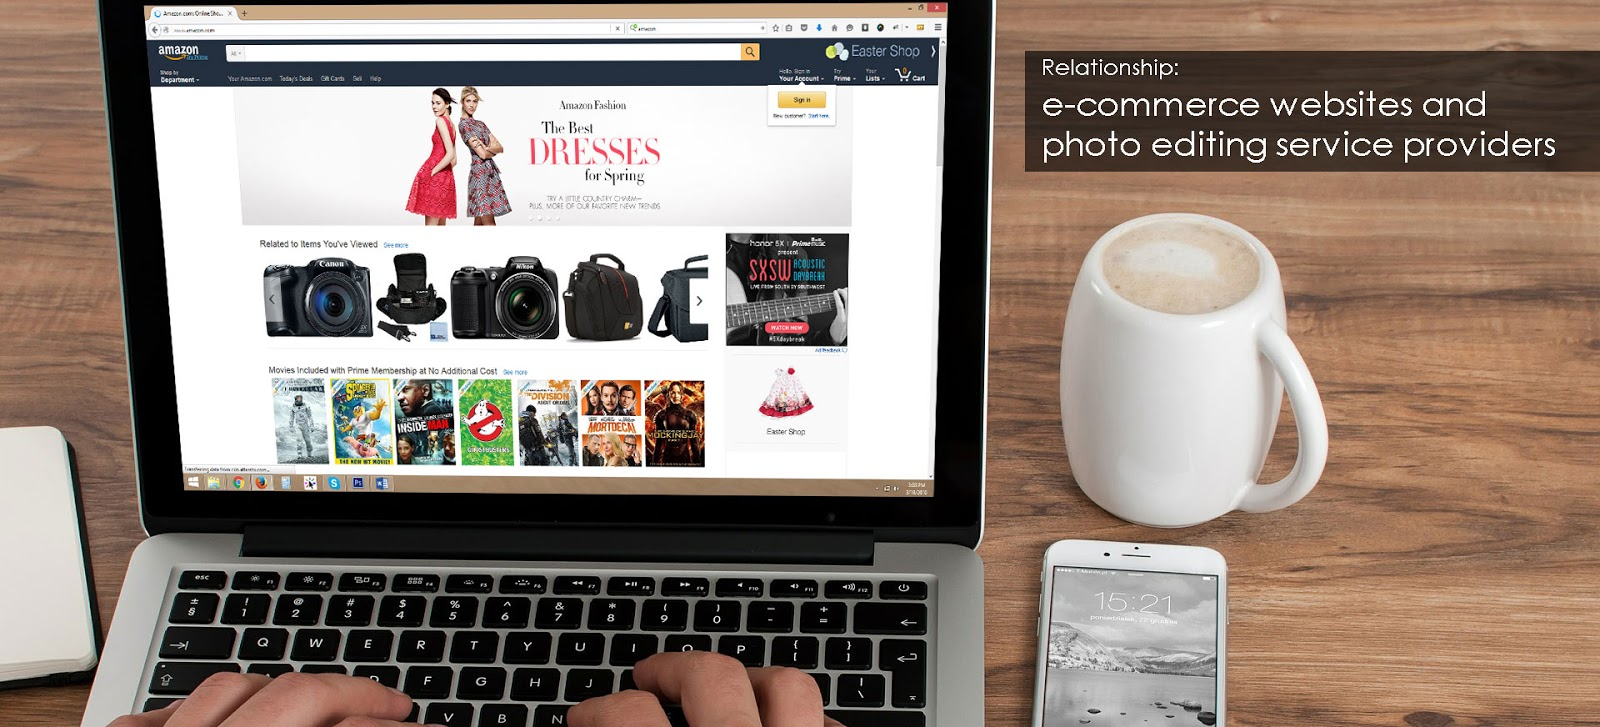 photo editing service for websites